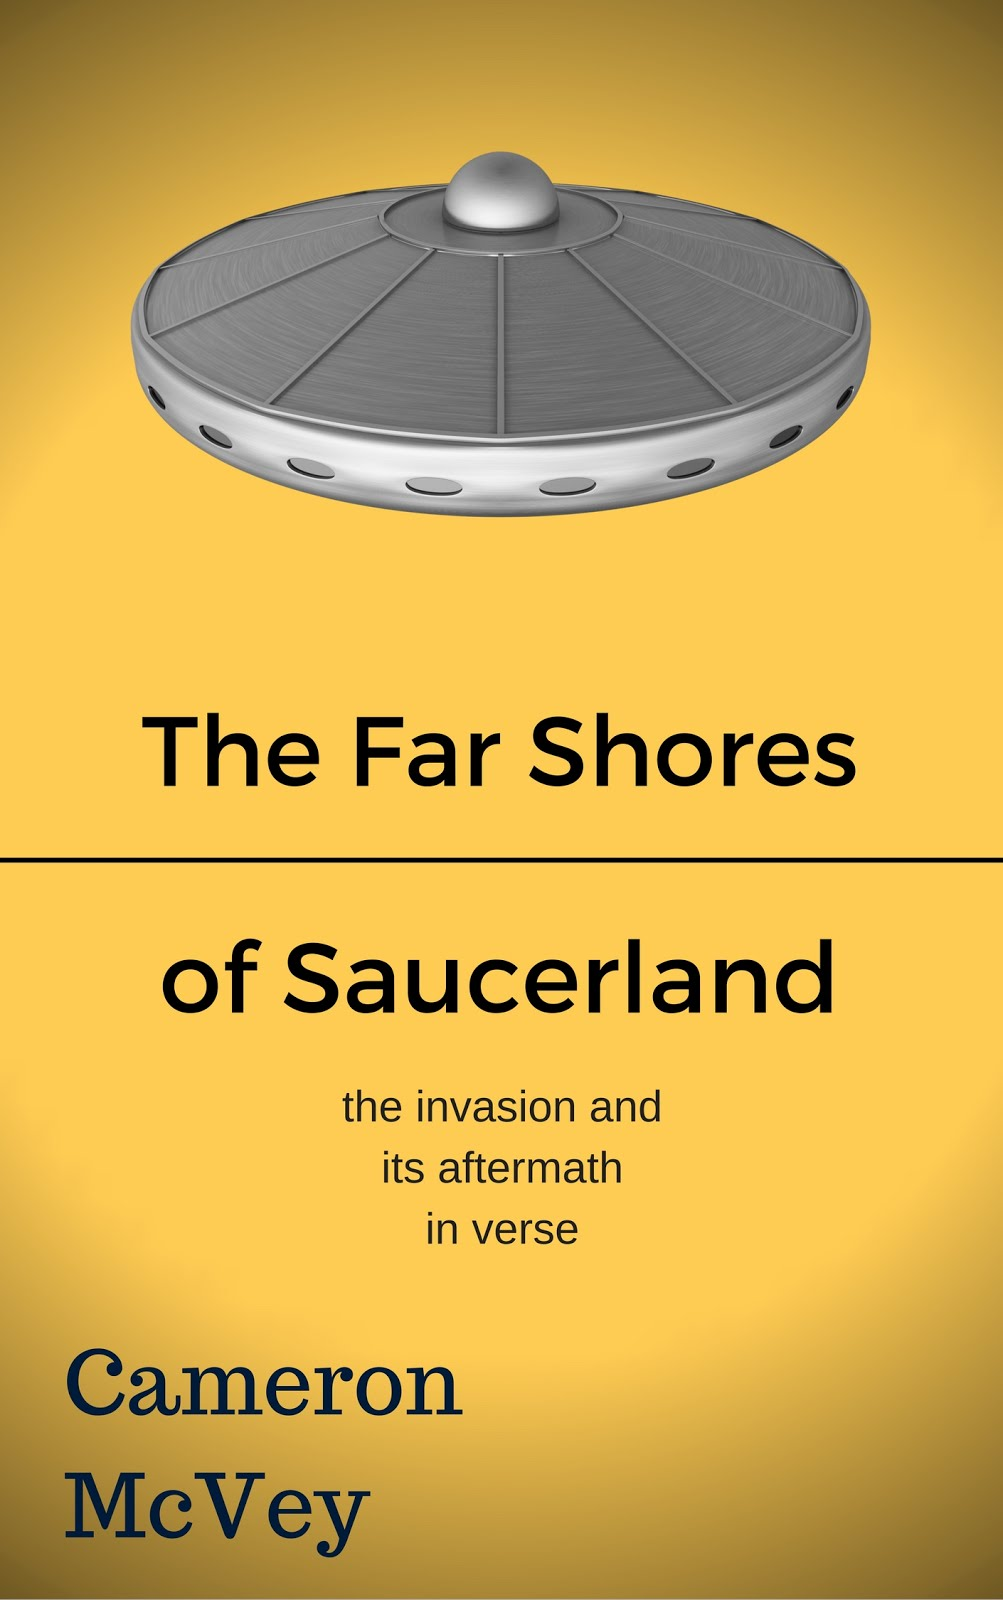 The Far Shores of Saucerland